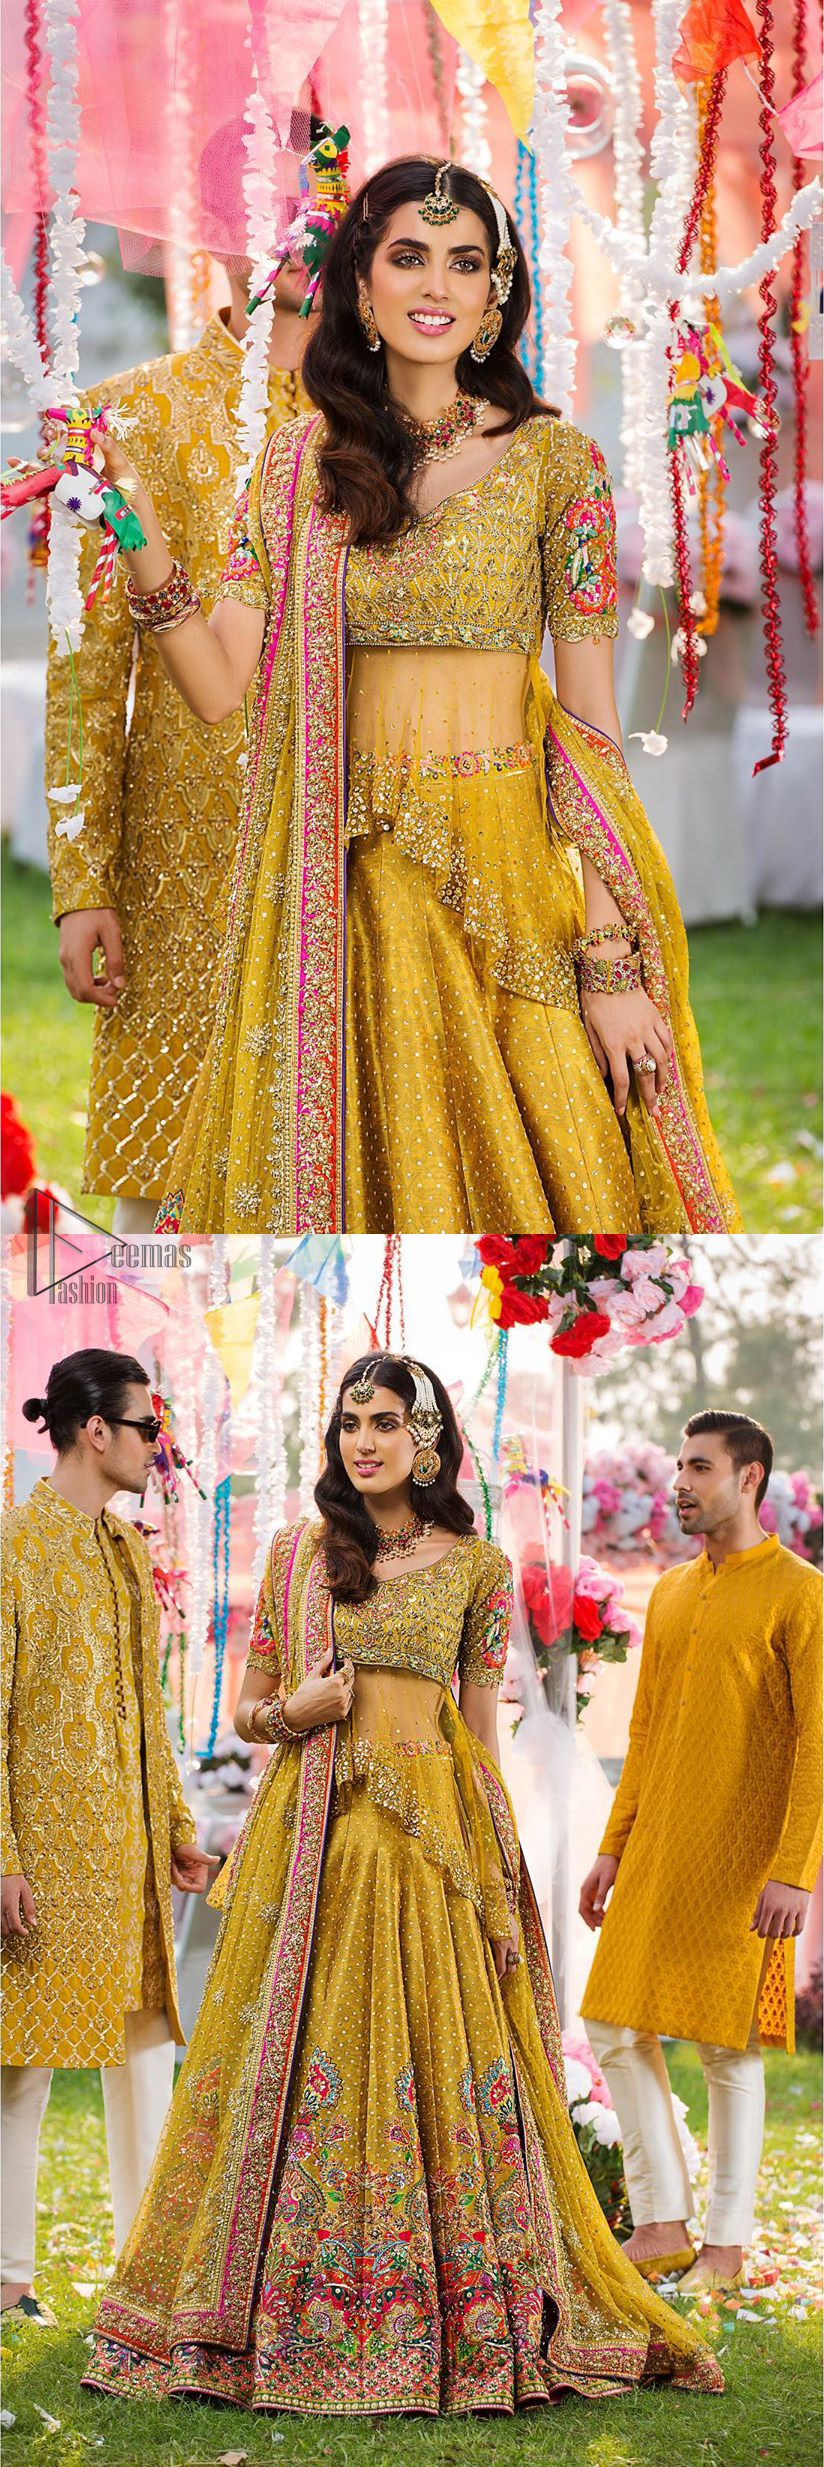 The perfect choice for Mahendi. Delicately crafted and personifying chic elegance with an element of grandiose. The shirt is emphasized with traditional neckline and a small back train. And the lehenga is decorated with intricate floral daaman enhanced with multiple color thread embroidery and rich zardozi work. Paired it up with yellow net dupatta sprinkled with sequins on the ground and four sided applique border.